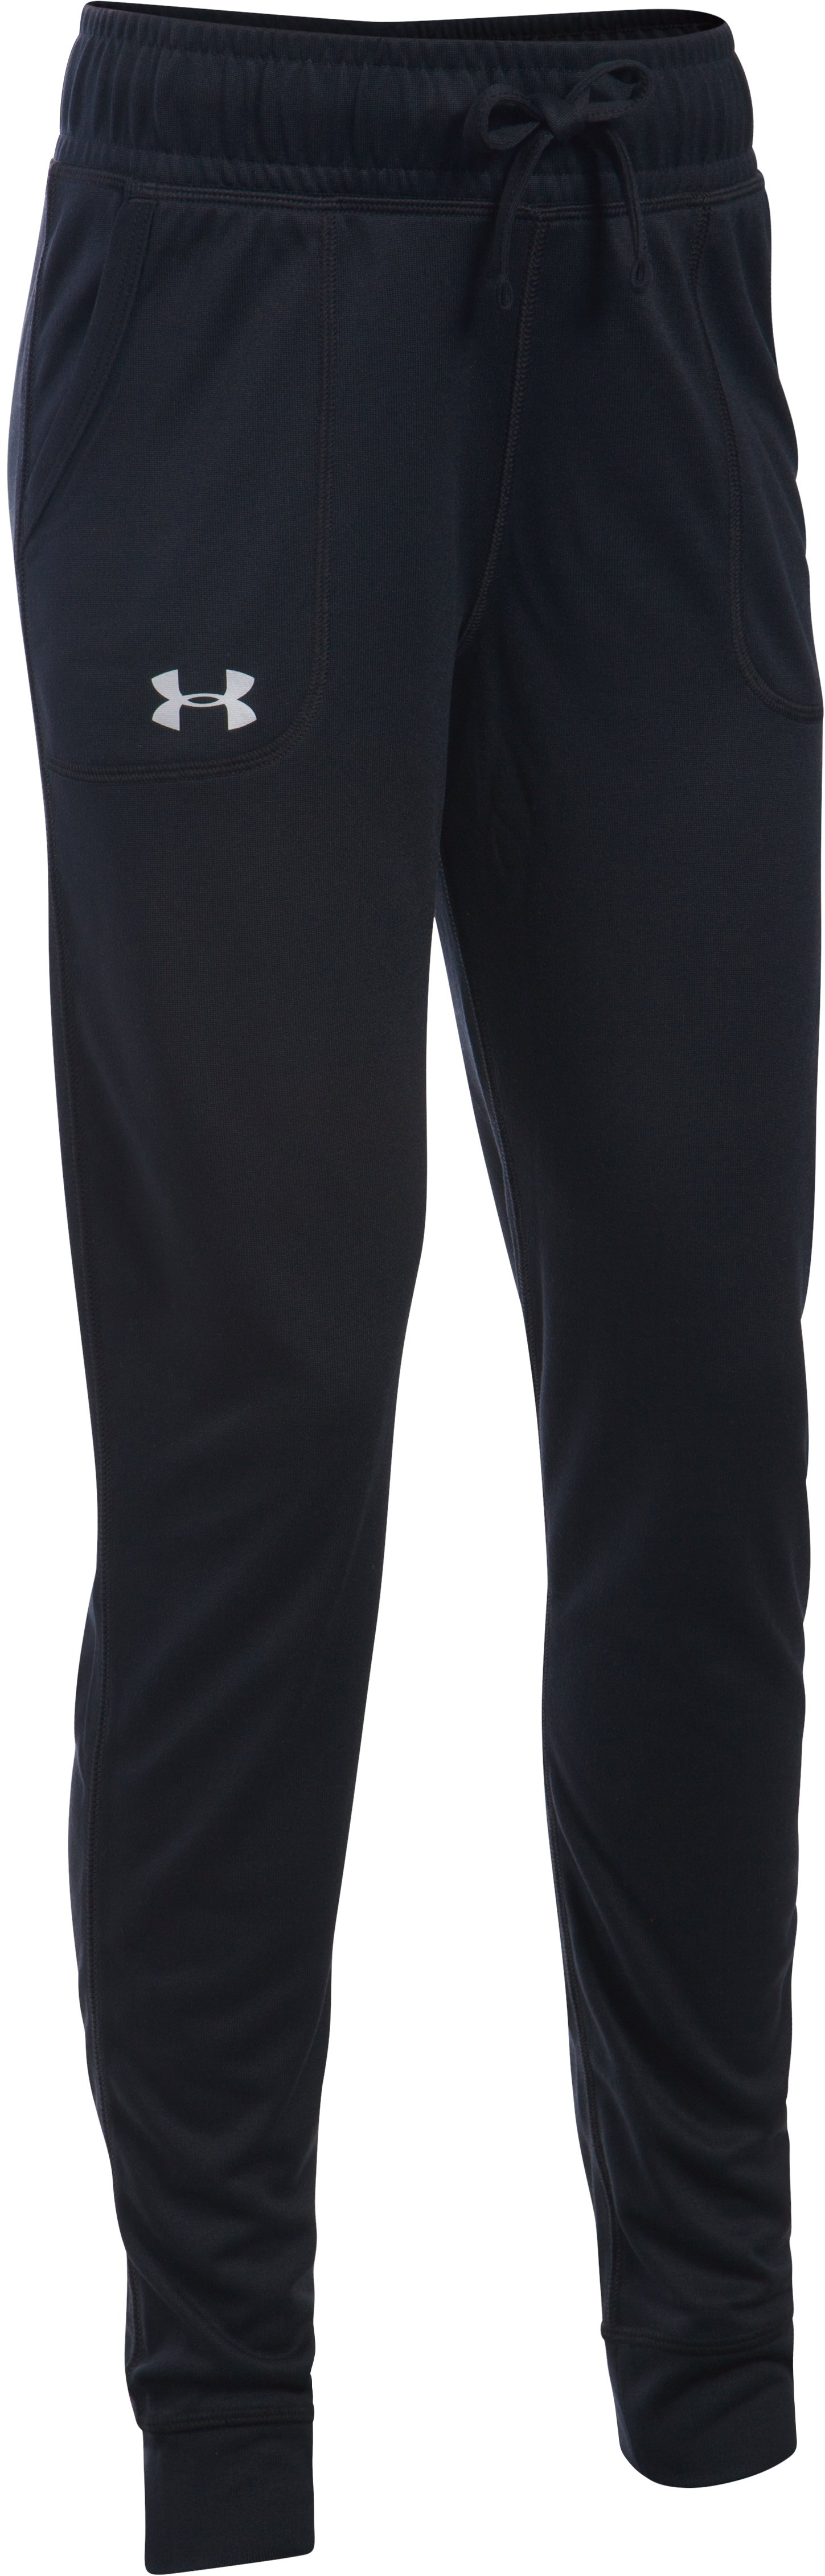 Girls' UA Tech™ Pant, Black